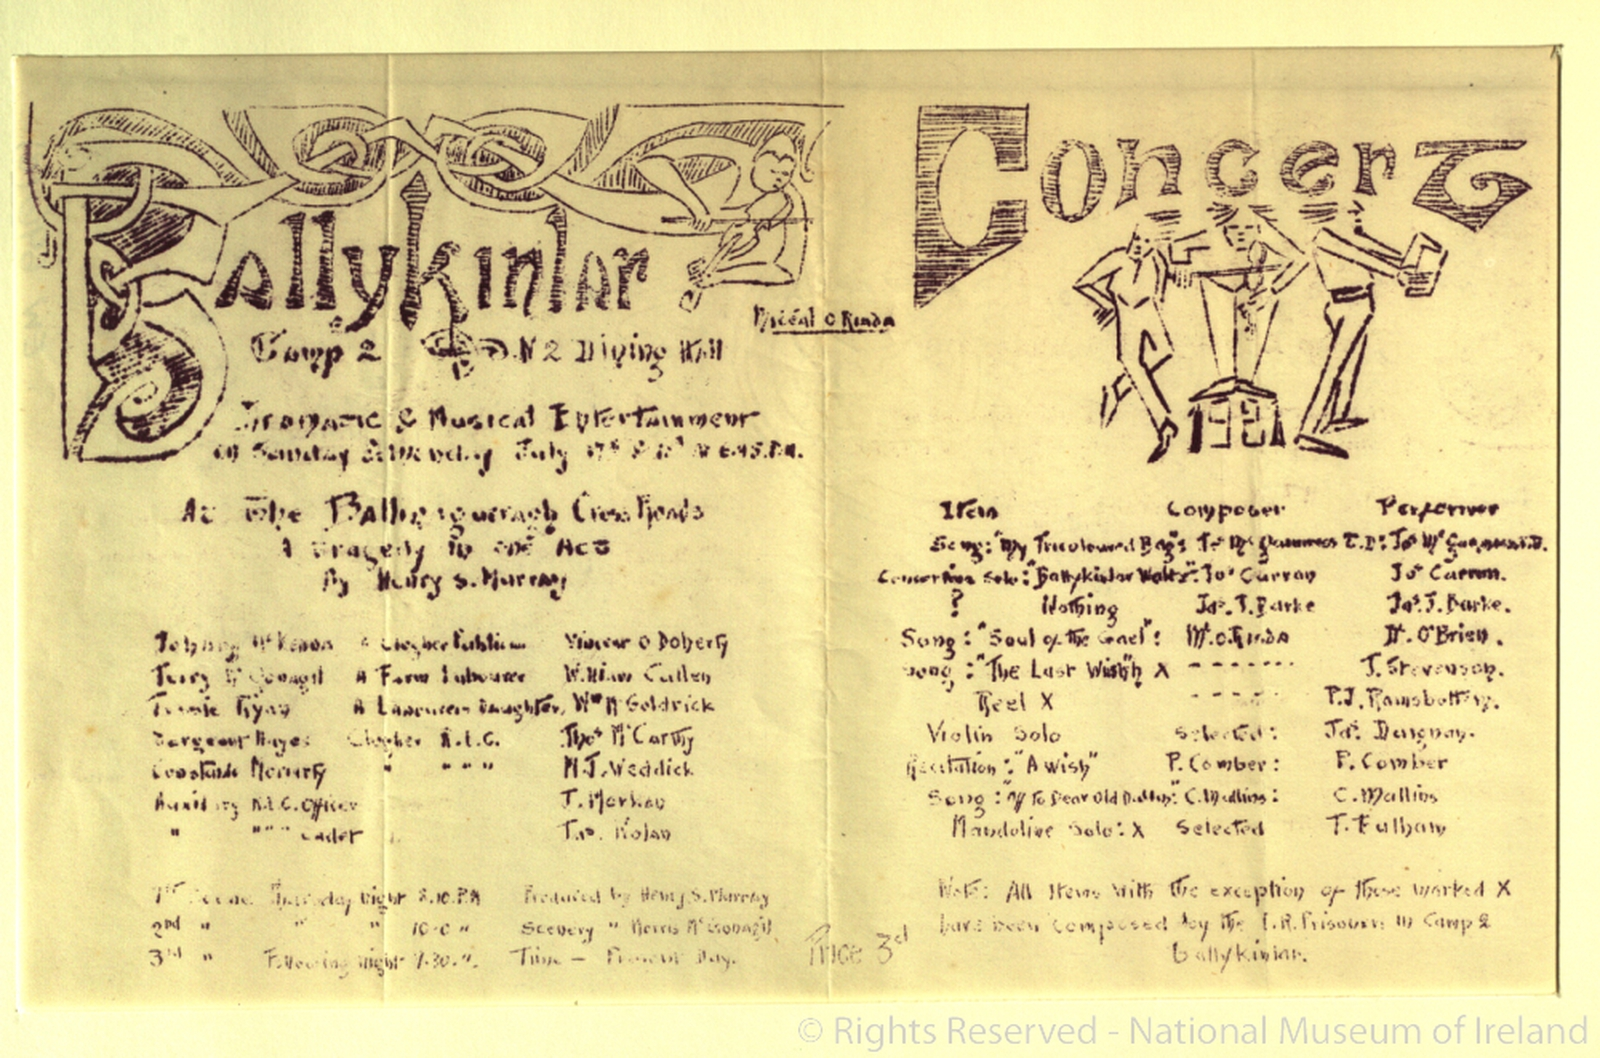 Image - Ballykinlar Players theatre programme, August 1921. Image courtesy of the National Museum of Ireland